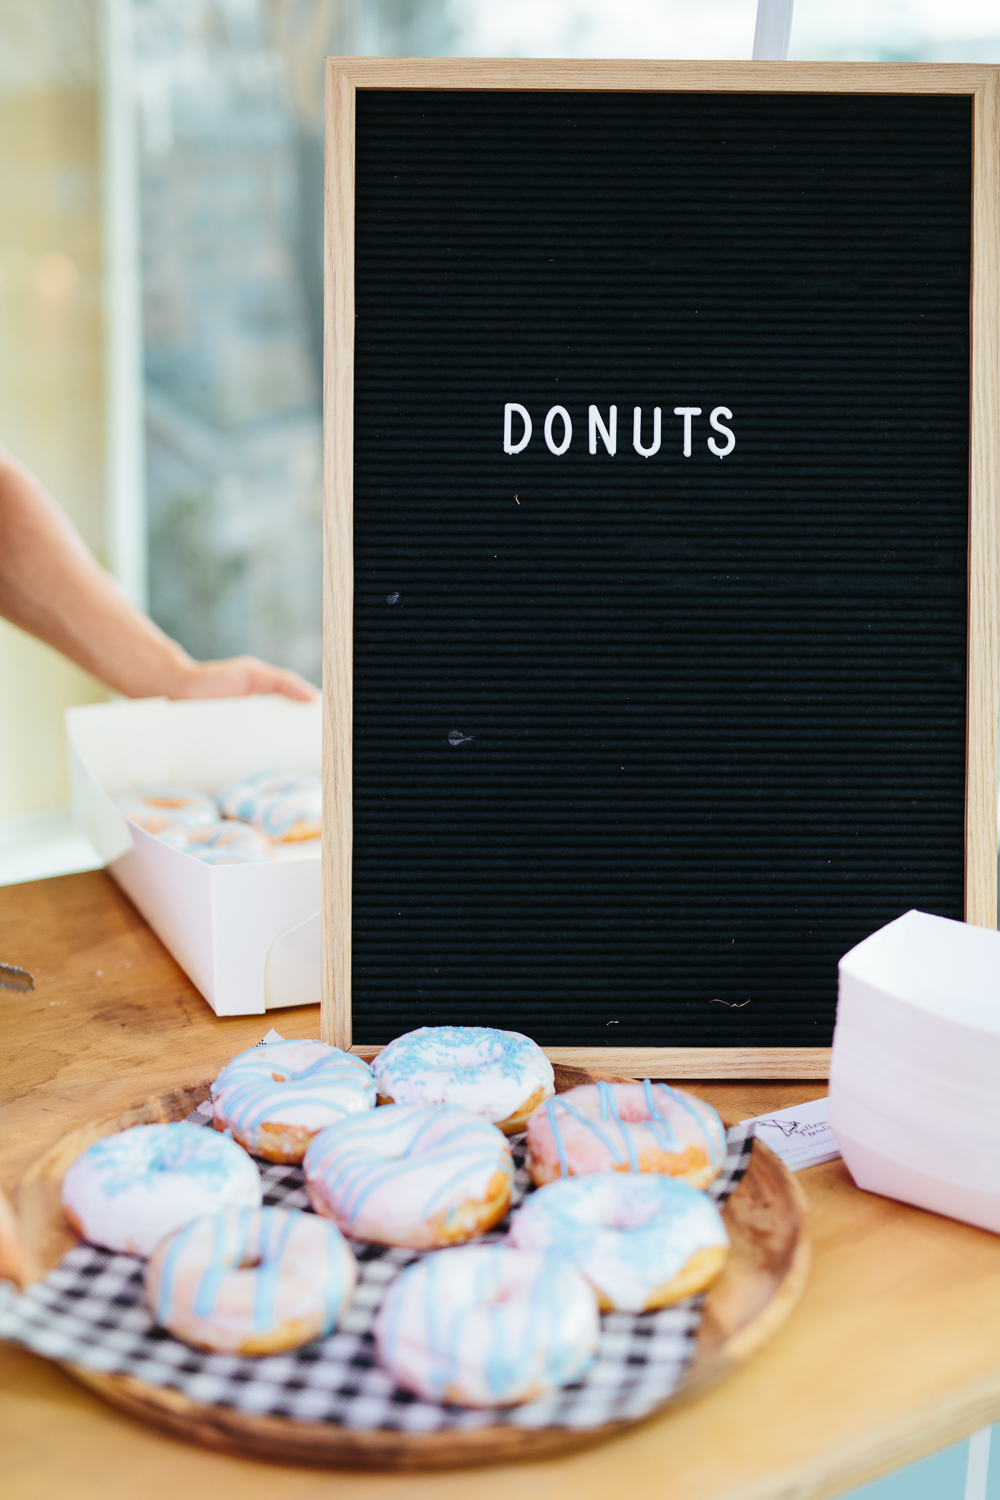 brisbane-donut-catering